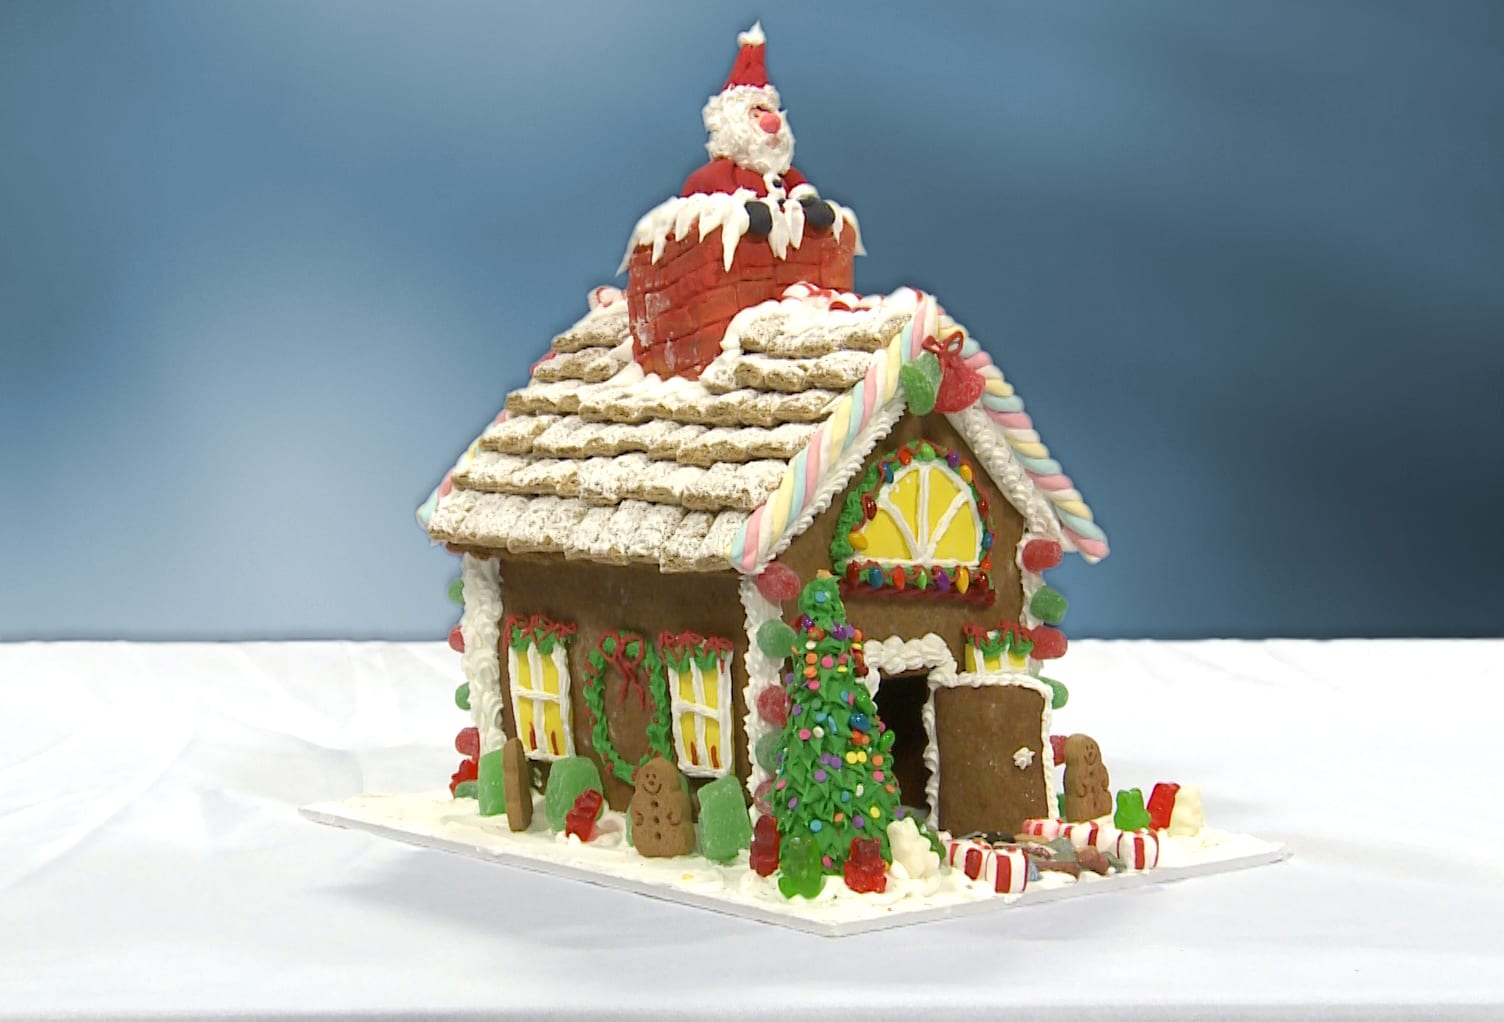 GINGERBREAD HOUSE & 2 CLASS TICKETS <br/> Donated by: JANET EVERS <br/> Valued at: $205 1